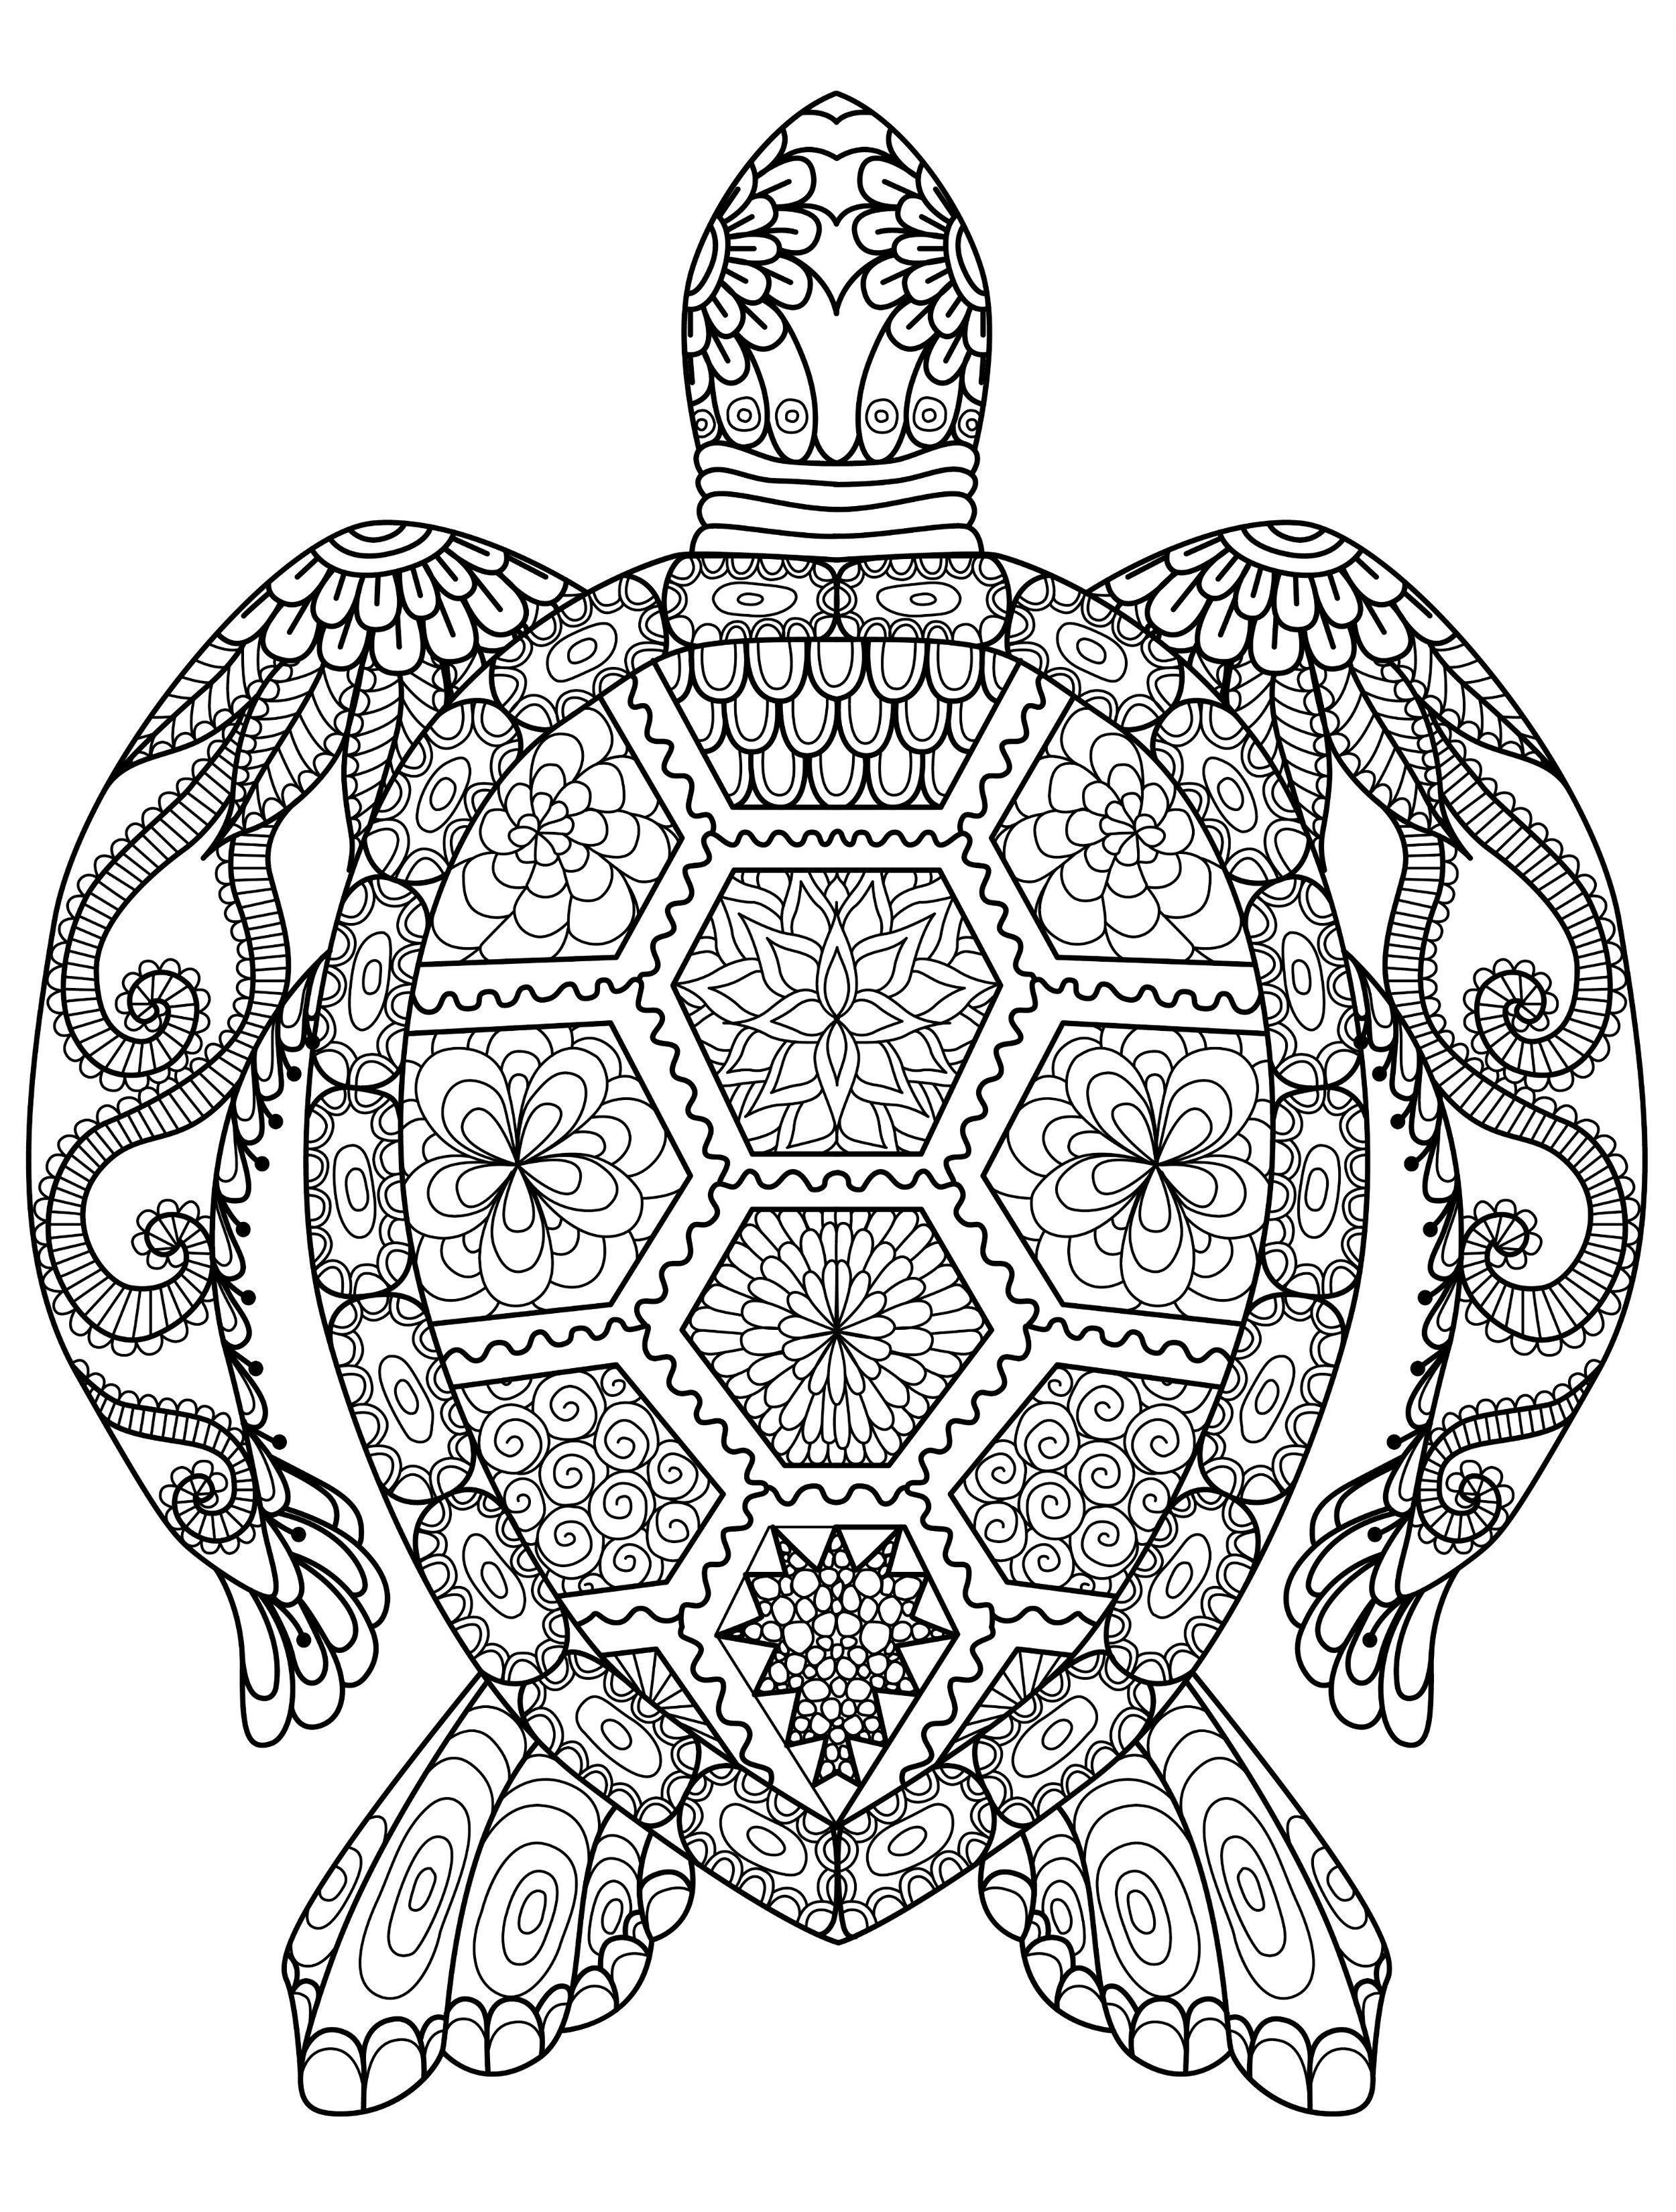 animal mandala coloring pages through the thousand images on the web with regards to animal. Black Bedroom Furniture Sets. Home Design Ideas